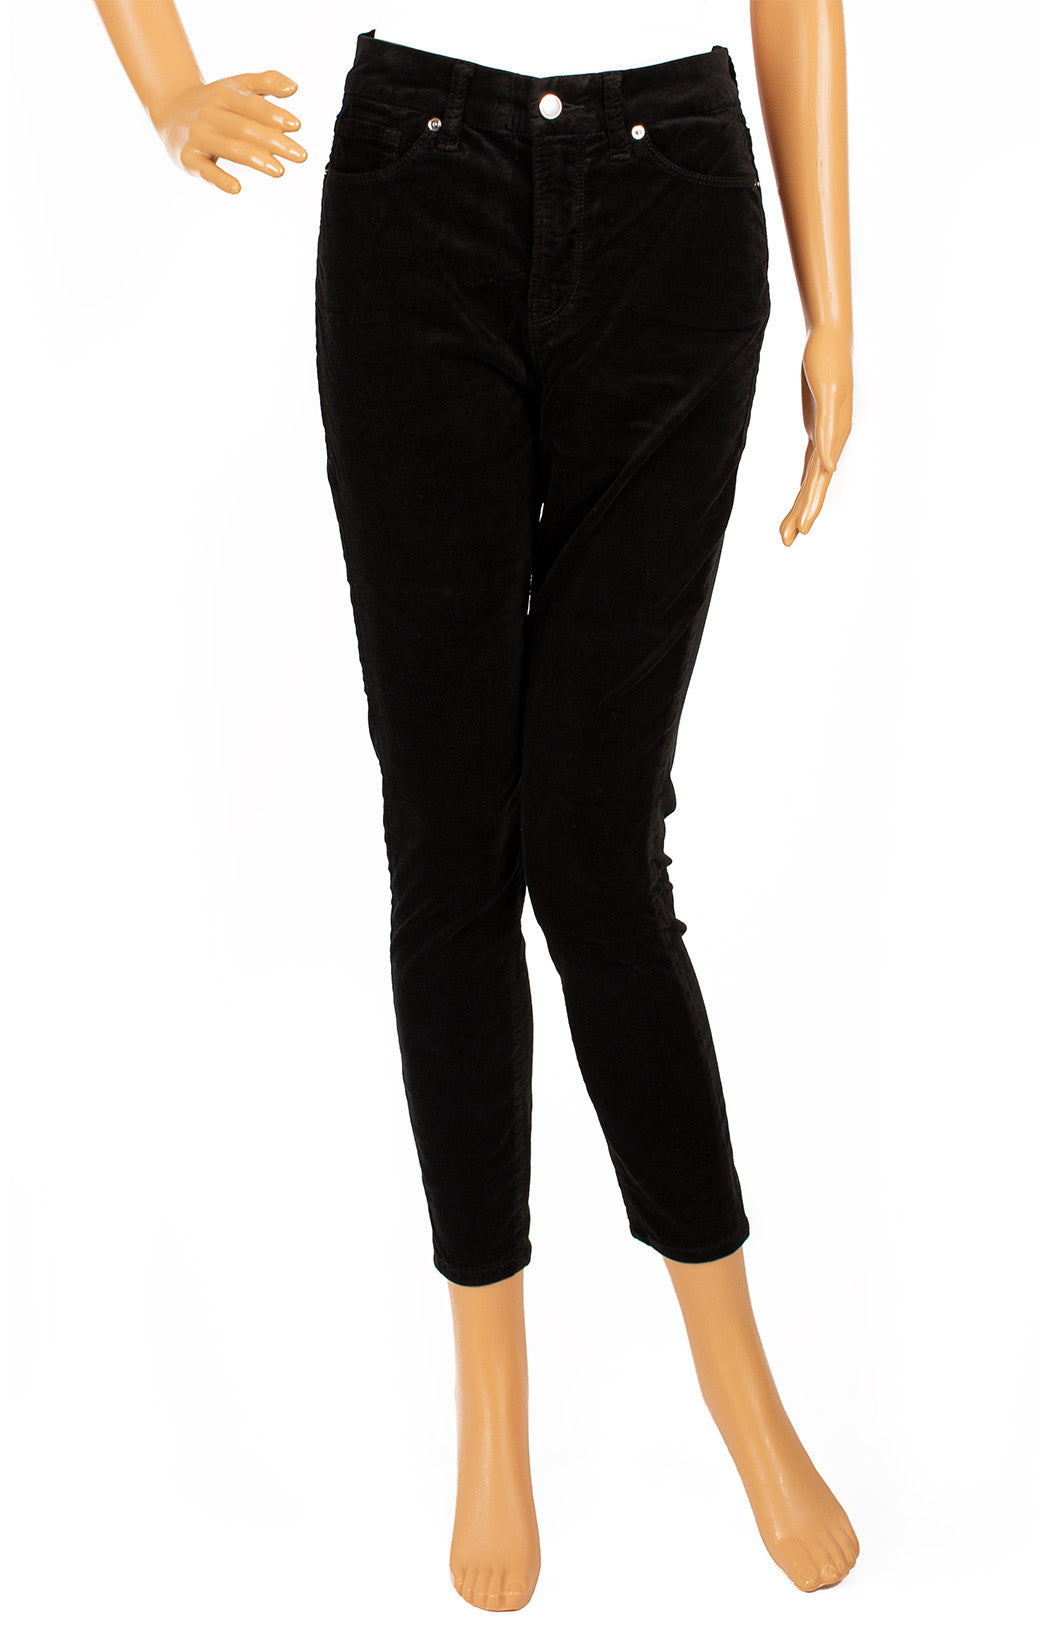 Front view of GOOD AMERICAN Pants Size: 30W